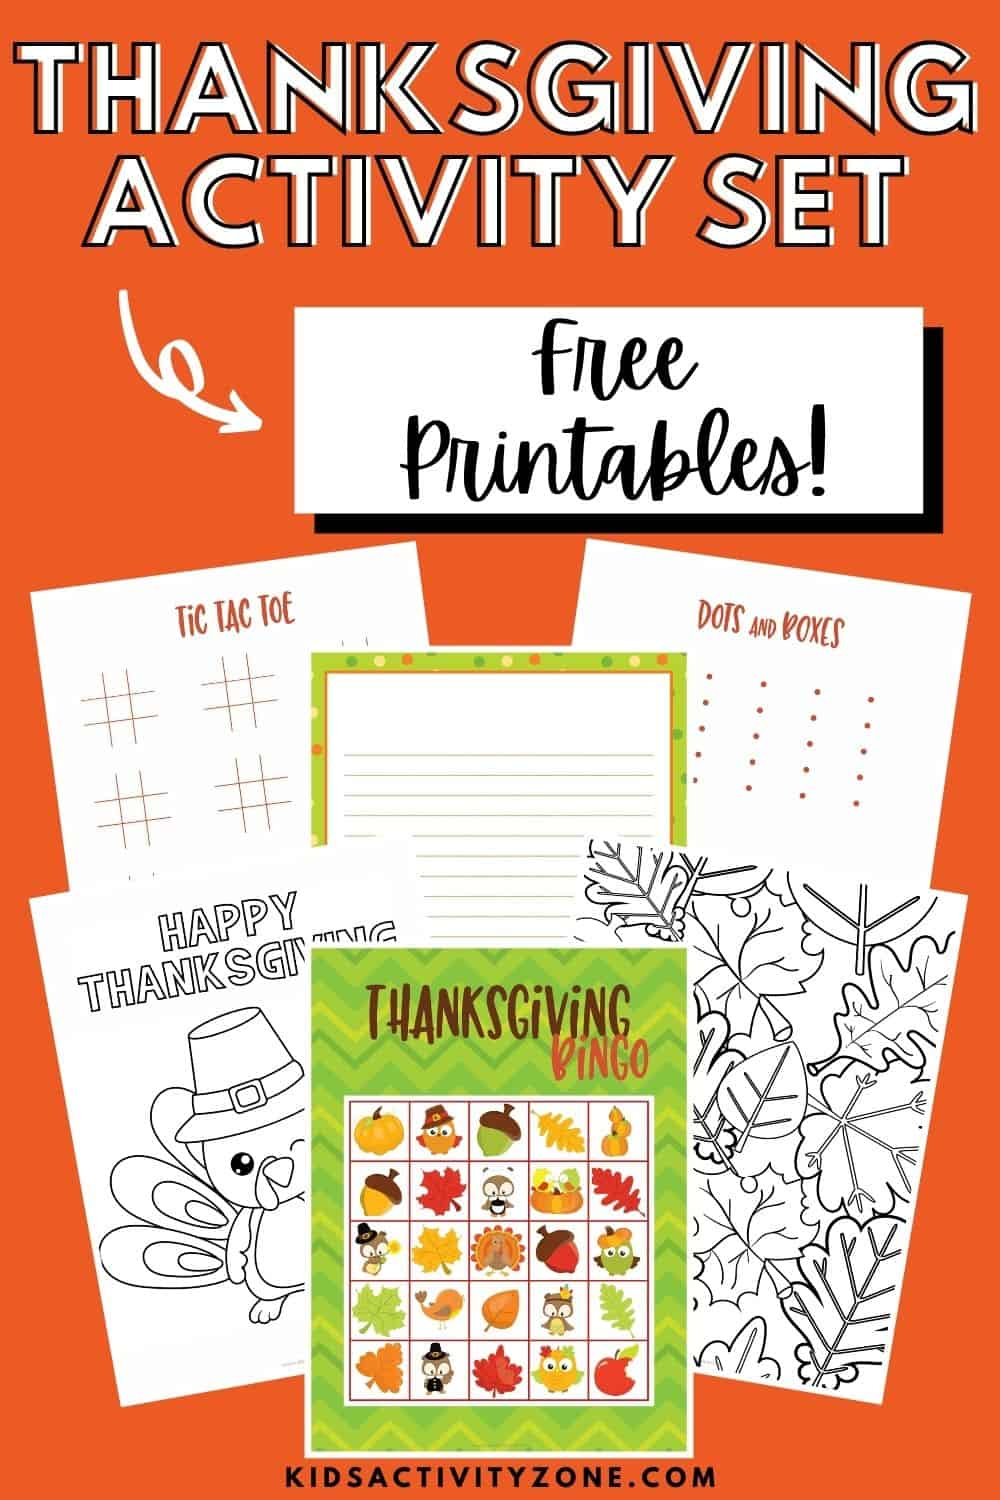 Free Thanksgiving Activities Printable Set is a great addition to any holiday. It has entertainment for every age. Some of the free printables include coloring pages, tic tac toe, Sudoku puzzles, Bingo and more! Grab it and print it out today.